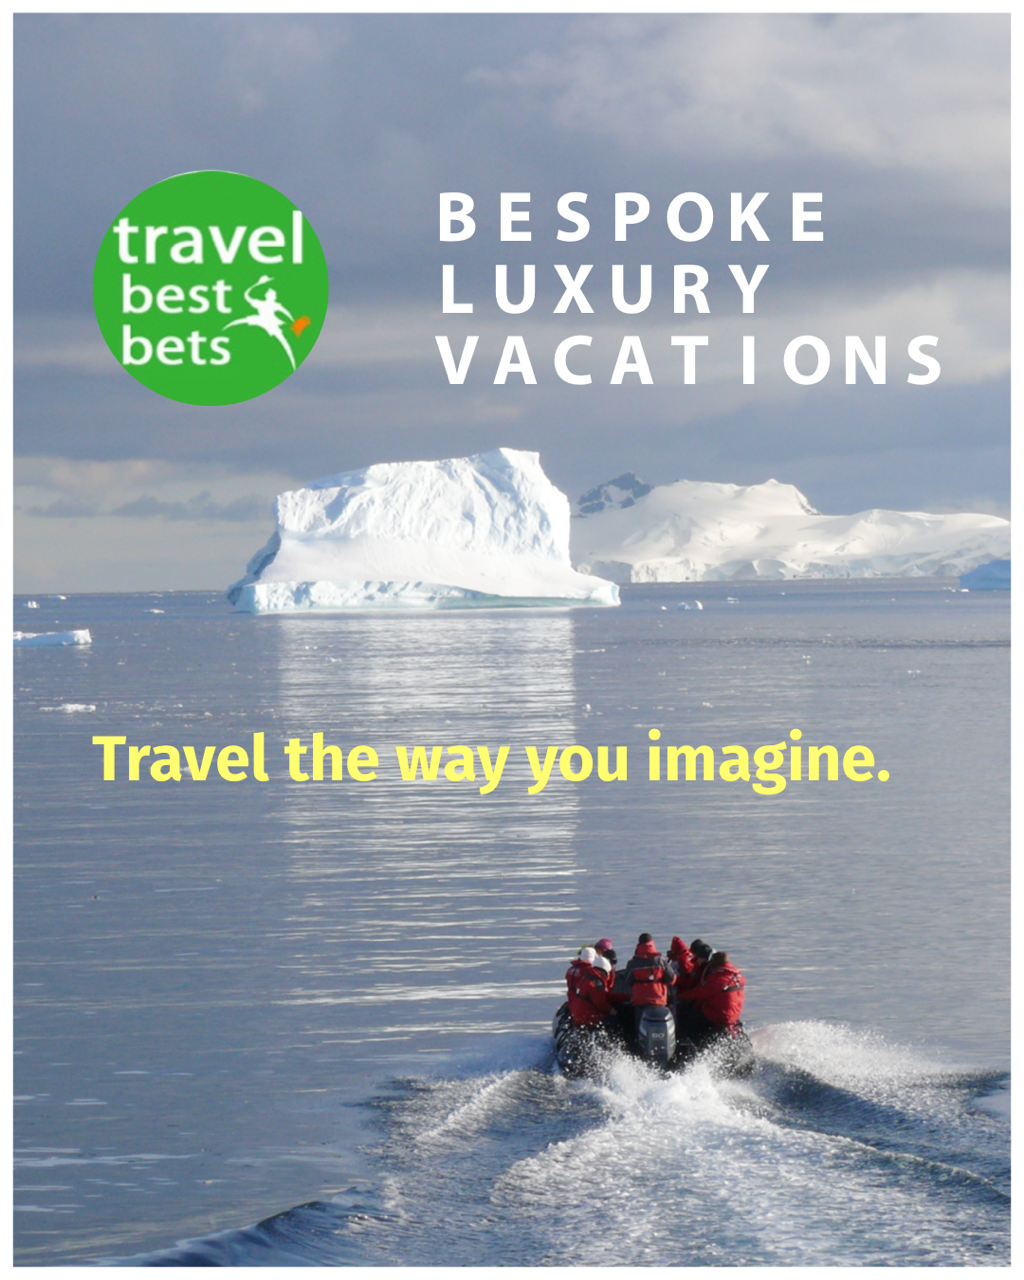 Bespoke Luxury Travel